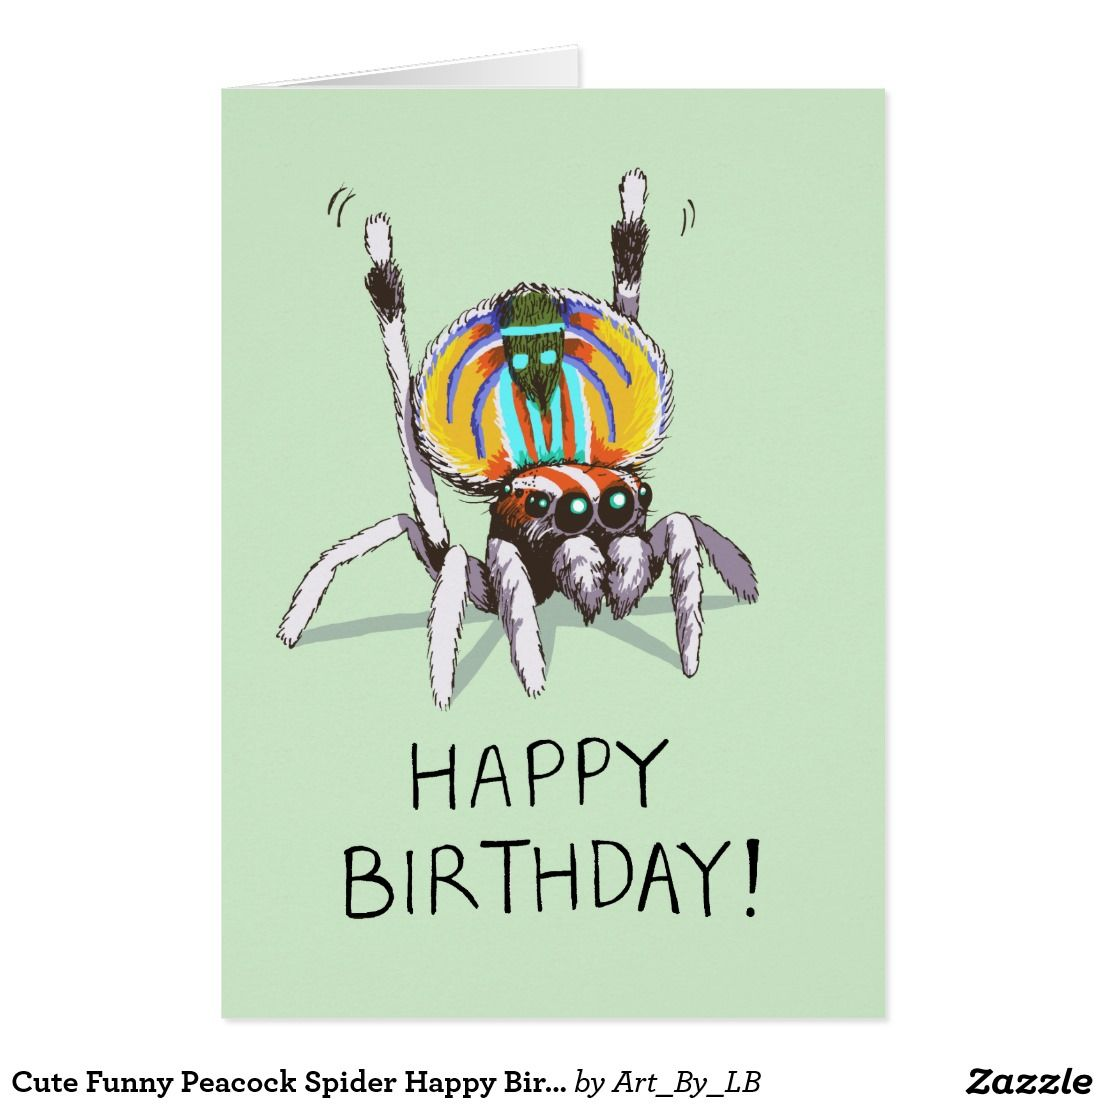 Cute Funny Peacock Spider Happy Birthday Card Zazzle Com Au Spider Drawing Happy Birthday Cards Colorful Drawings